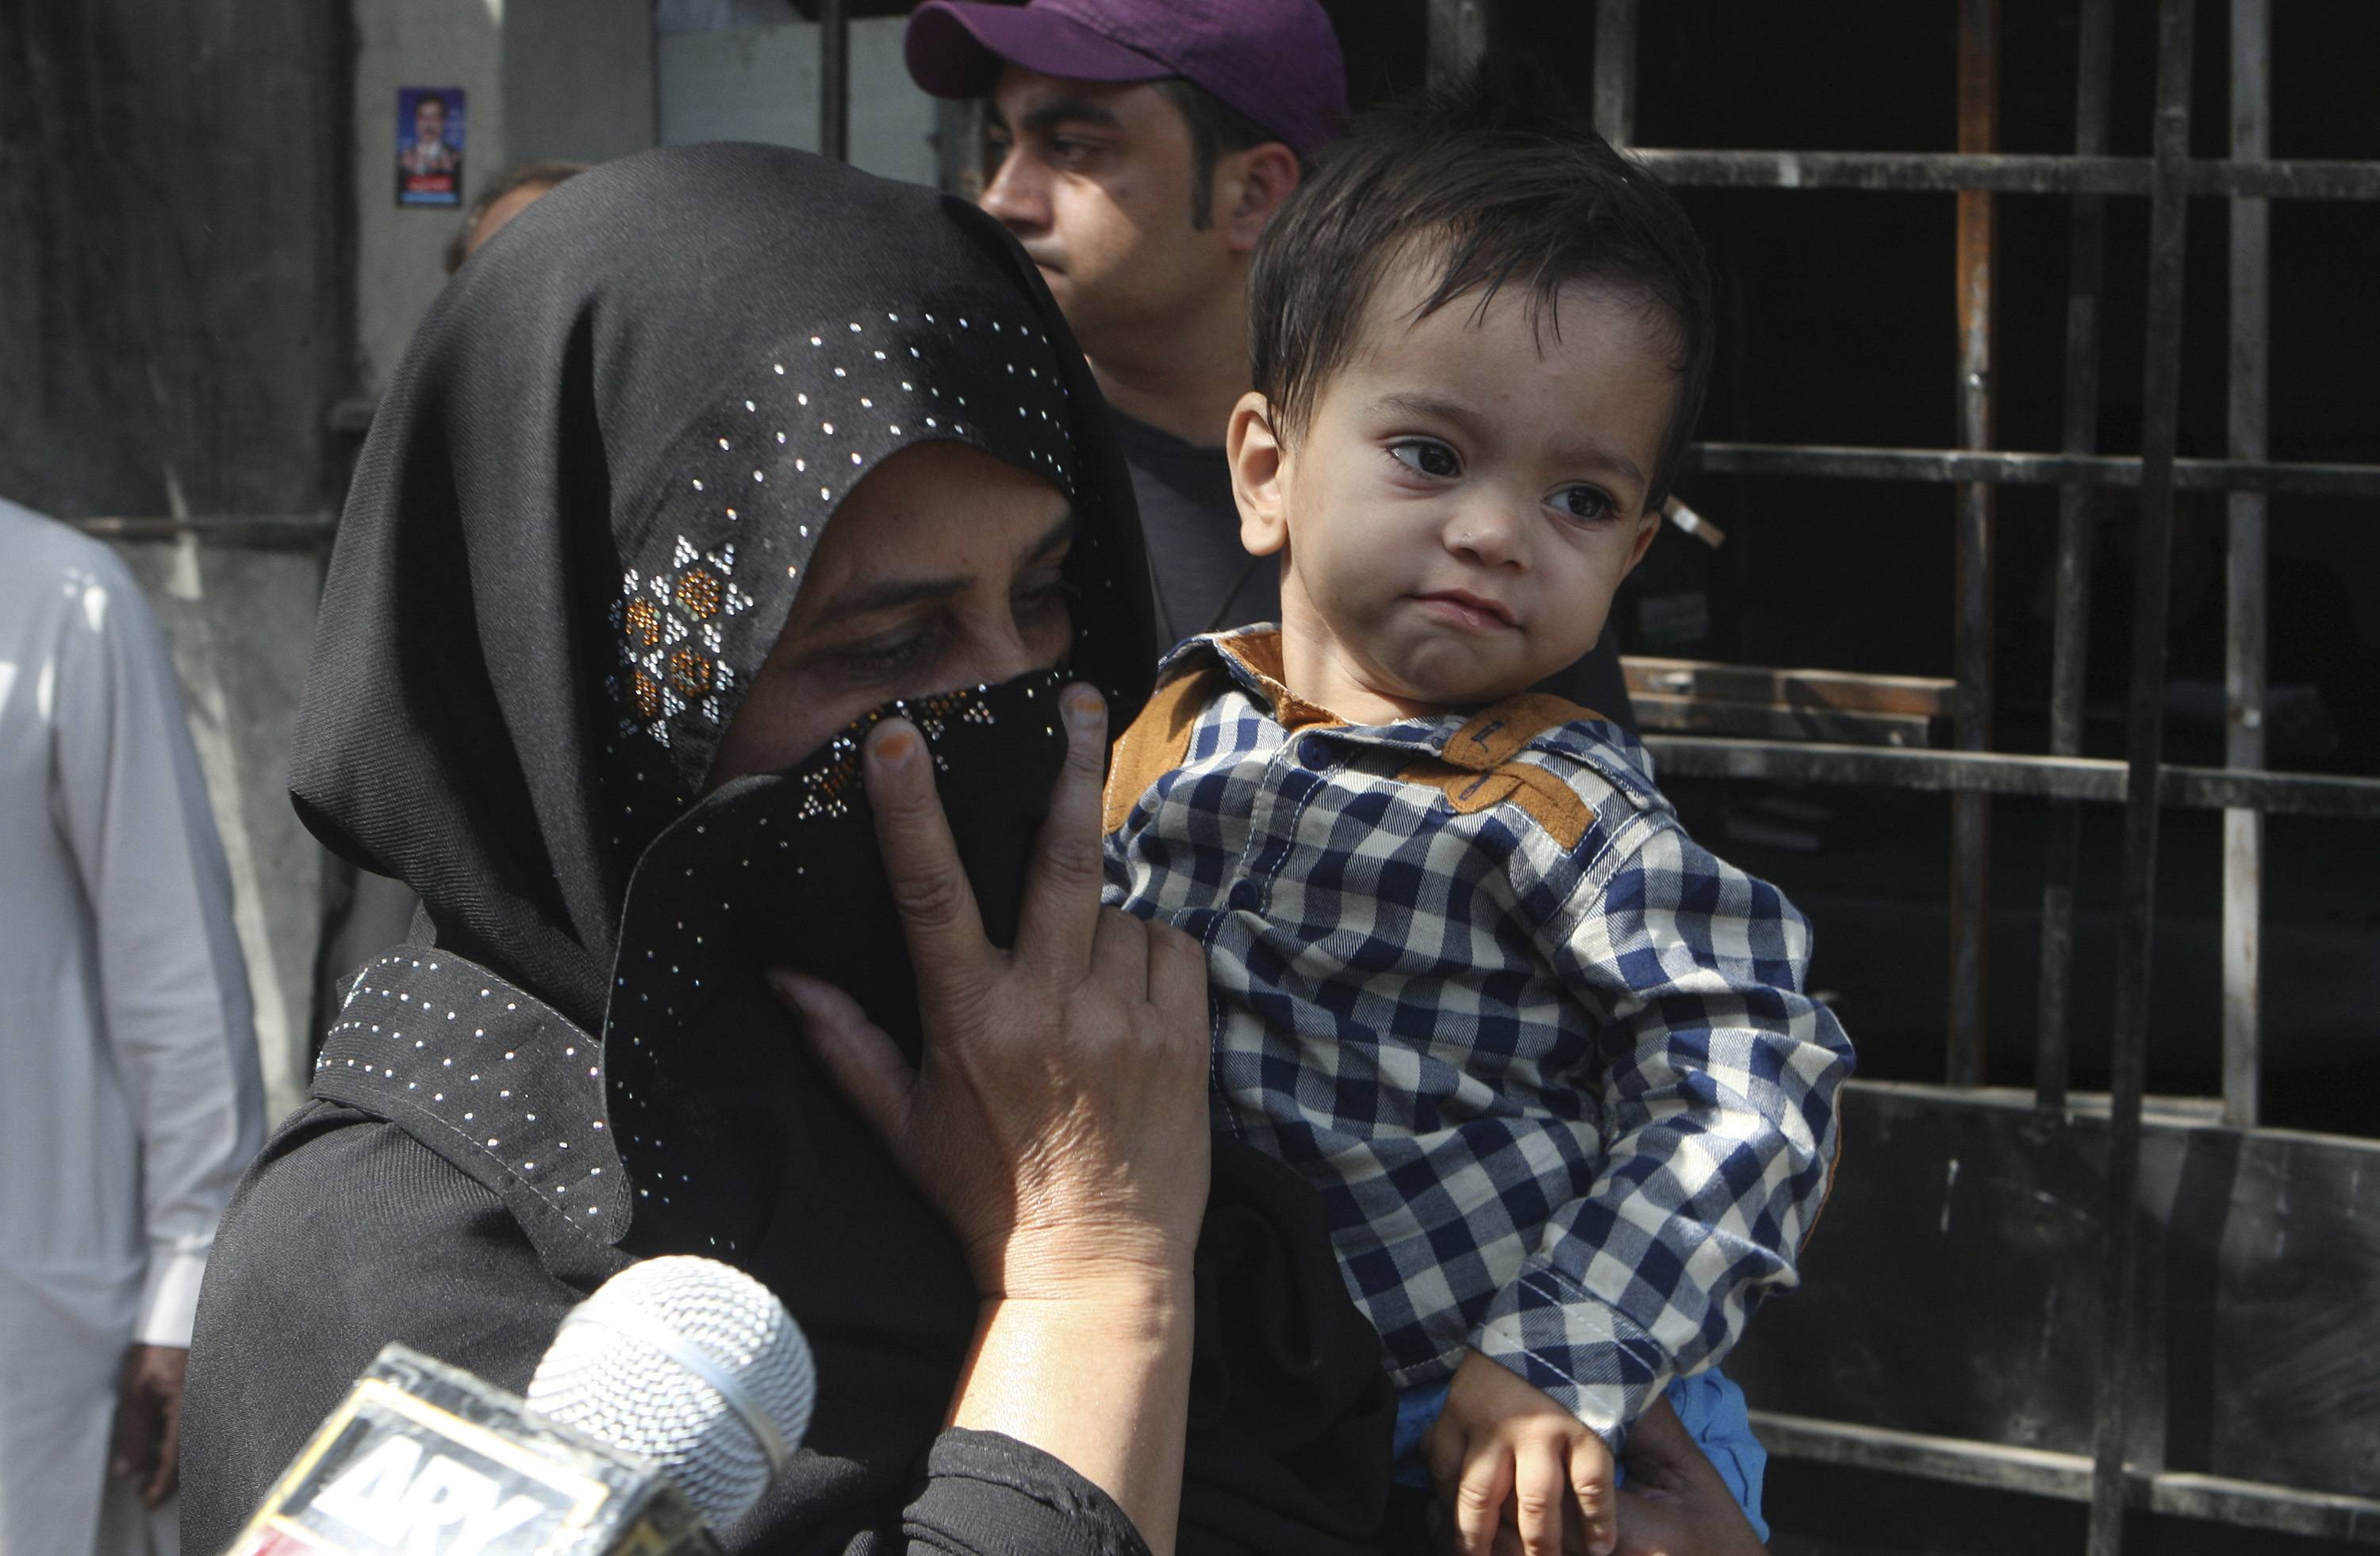 An unidentified family member holds a nine-month-old boy, trying to avoid media Saturday as they leave after the boy's court appearance in Lahore, Pakistan.